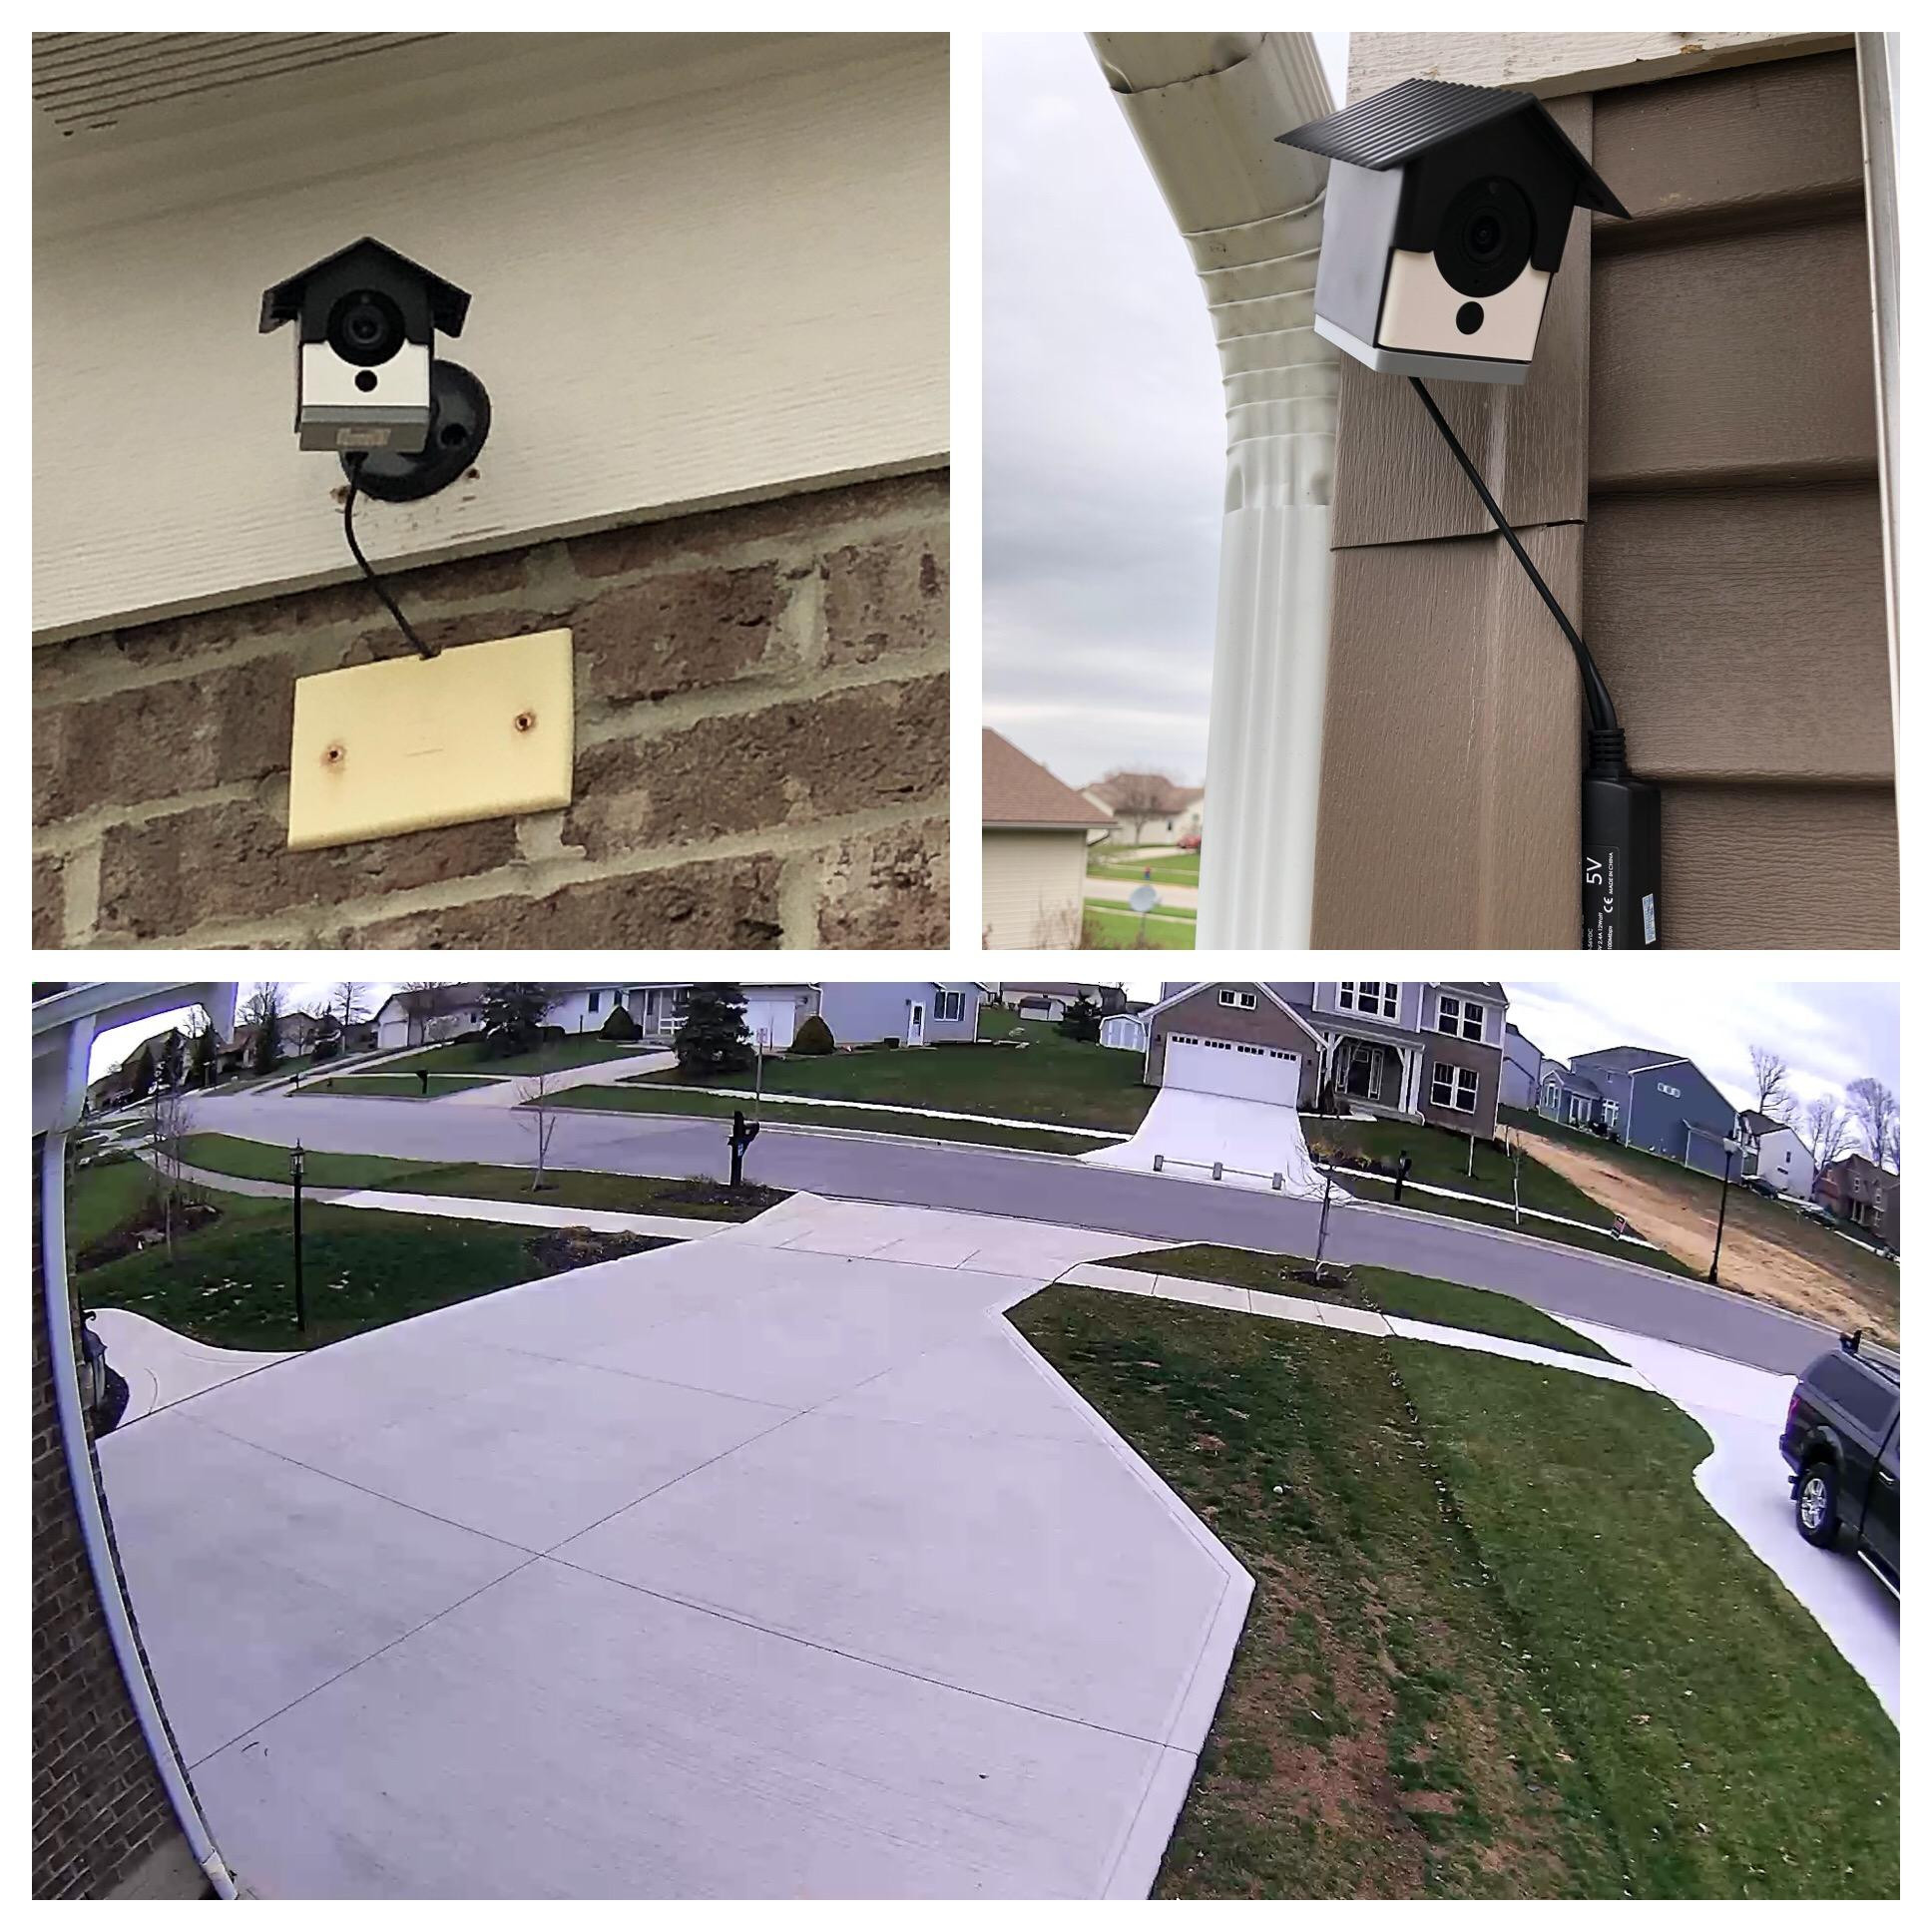 Best ideas about Wyze Cam Outdoor . Save or Pin How to Power source Wyze Cameras outside the house newbee Now.